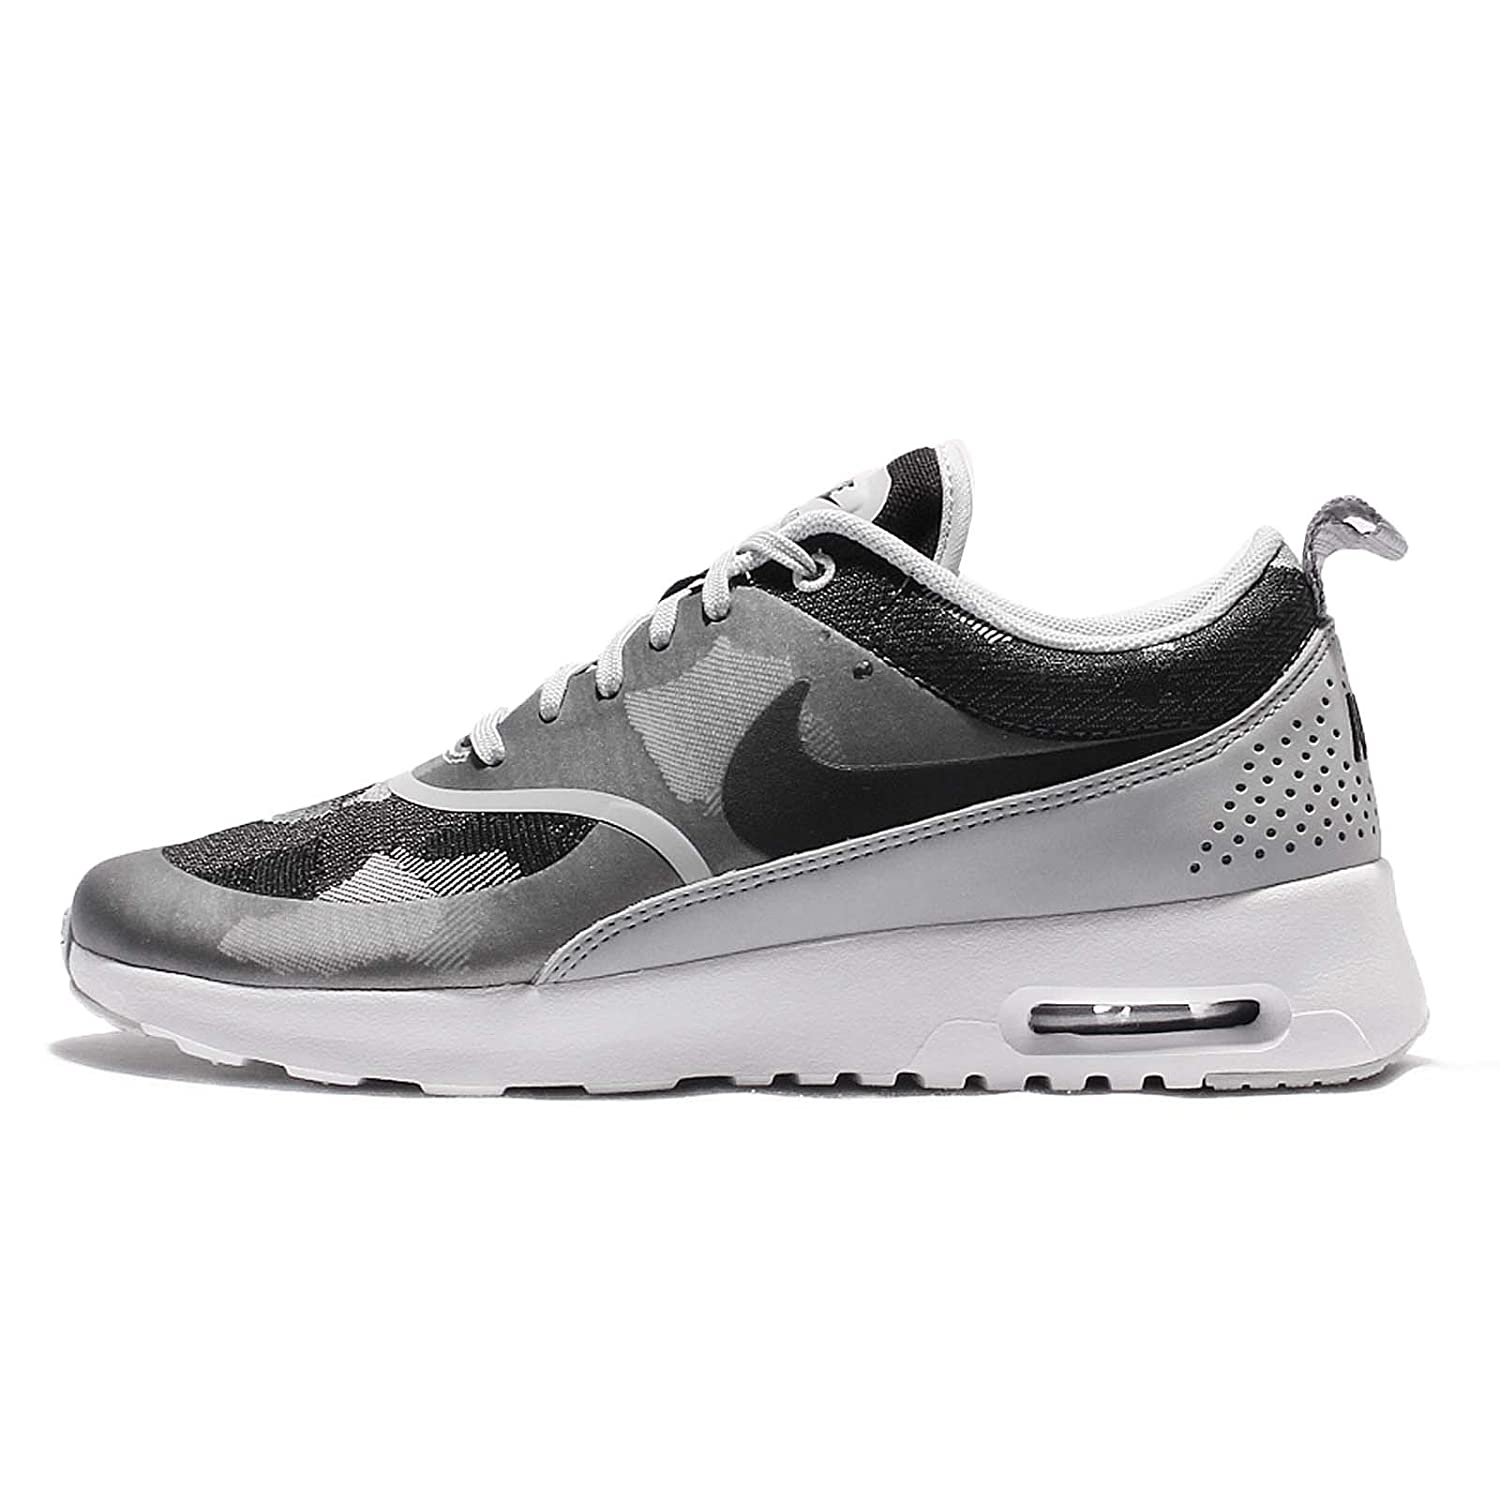 new product 474a2 59bf4 Amazon.com  Nike Womens Wmns Air Max Thea JCRD, PURE PLATINUMBLACK-WOLF  GREY, 5.5 US  Fashion Sneakers